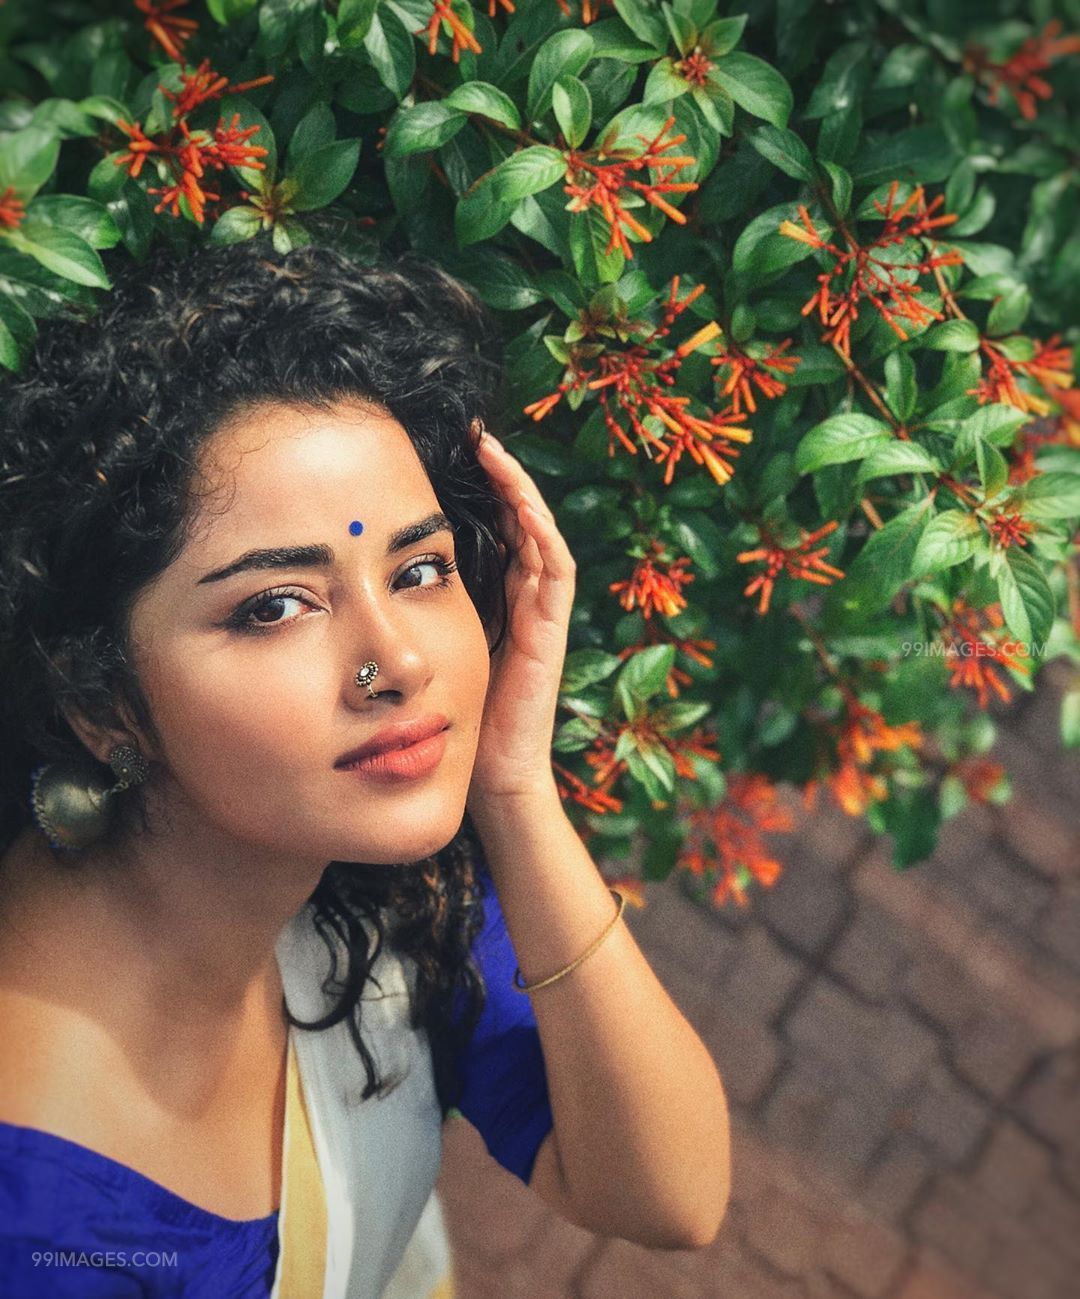 Anupama Parameswaran HD Wallpapers (Desktop Background / Android / iPhone) (1080p, 4k) (82073) - Anupama Parameswaran